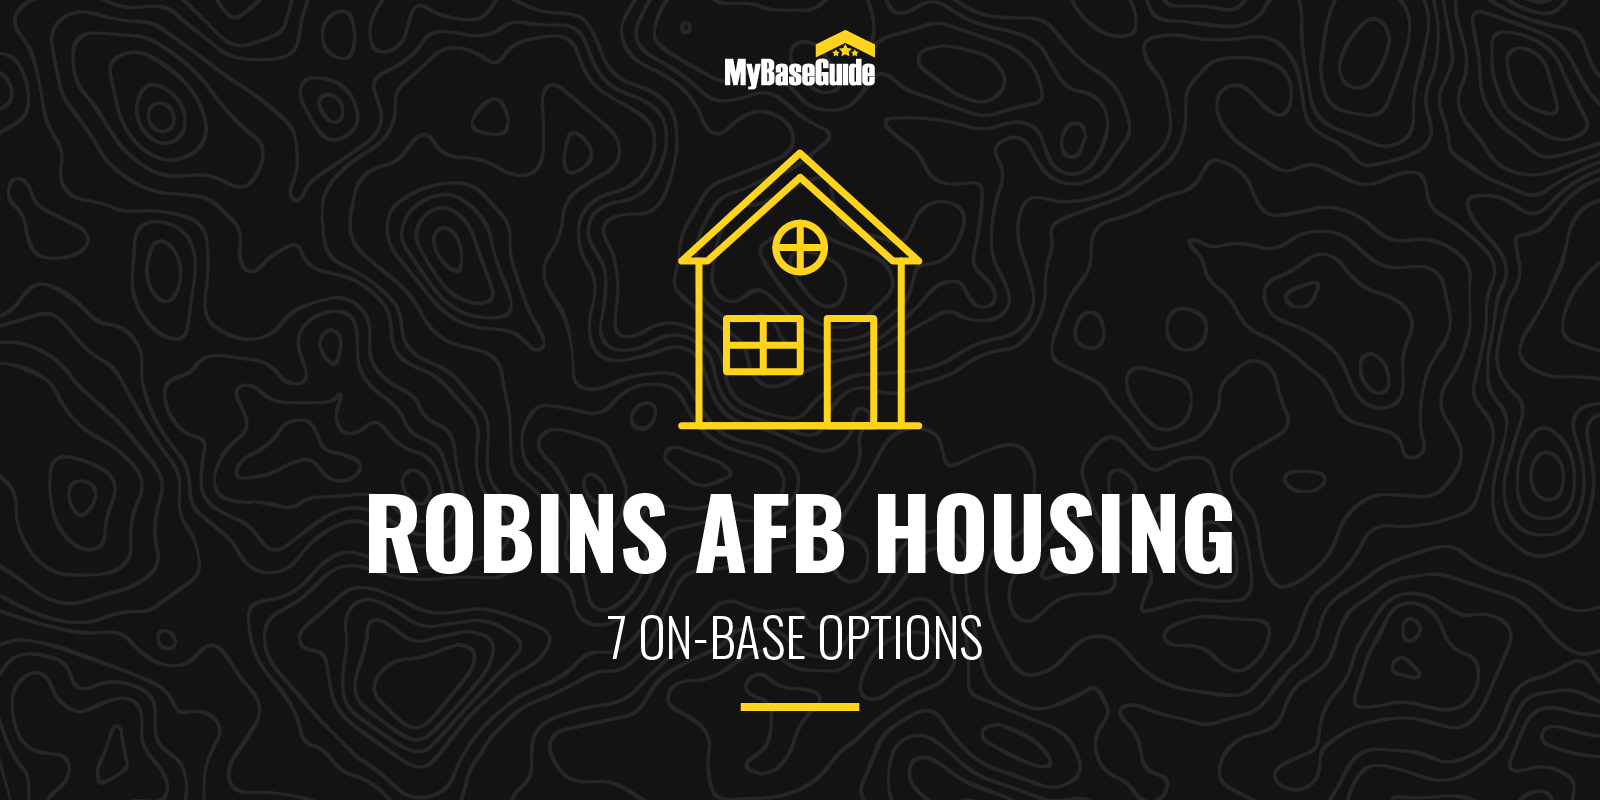 Robins AFB Housing: 7 on-base options